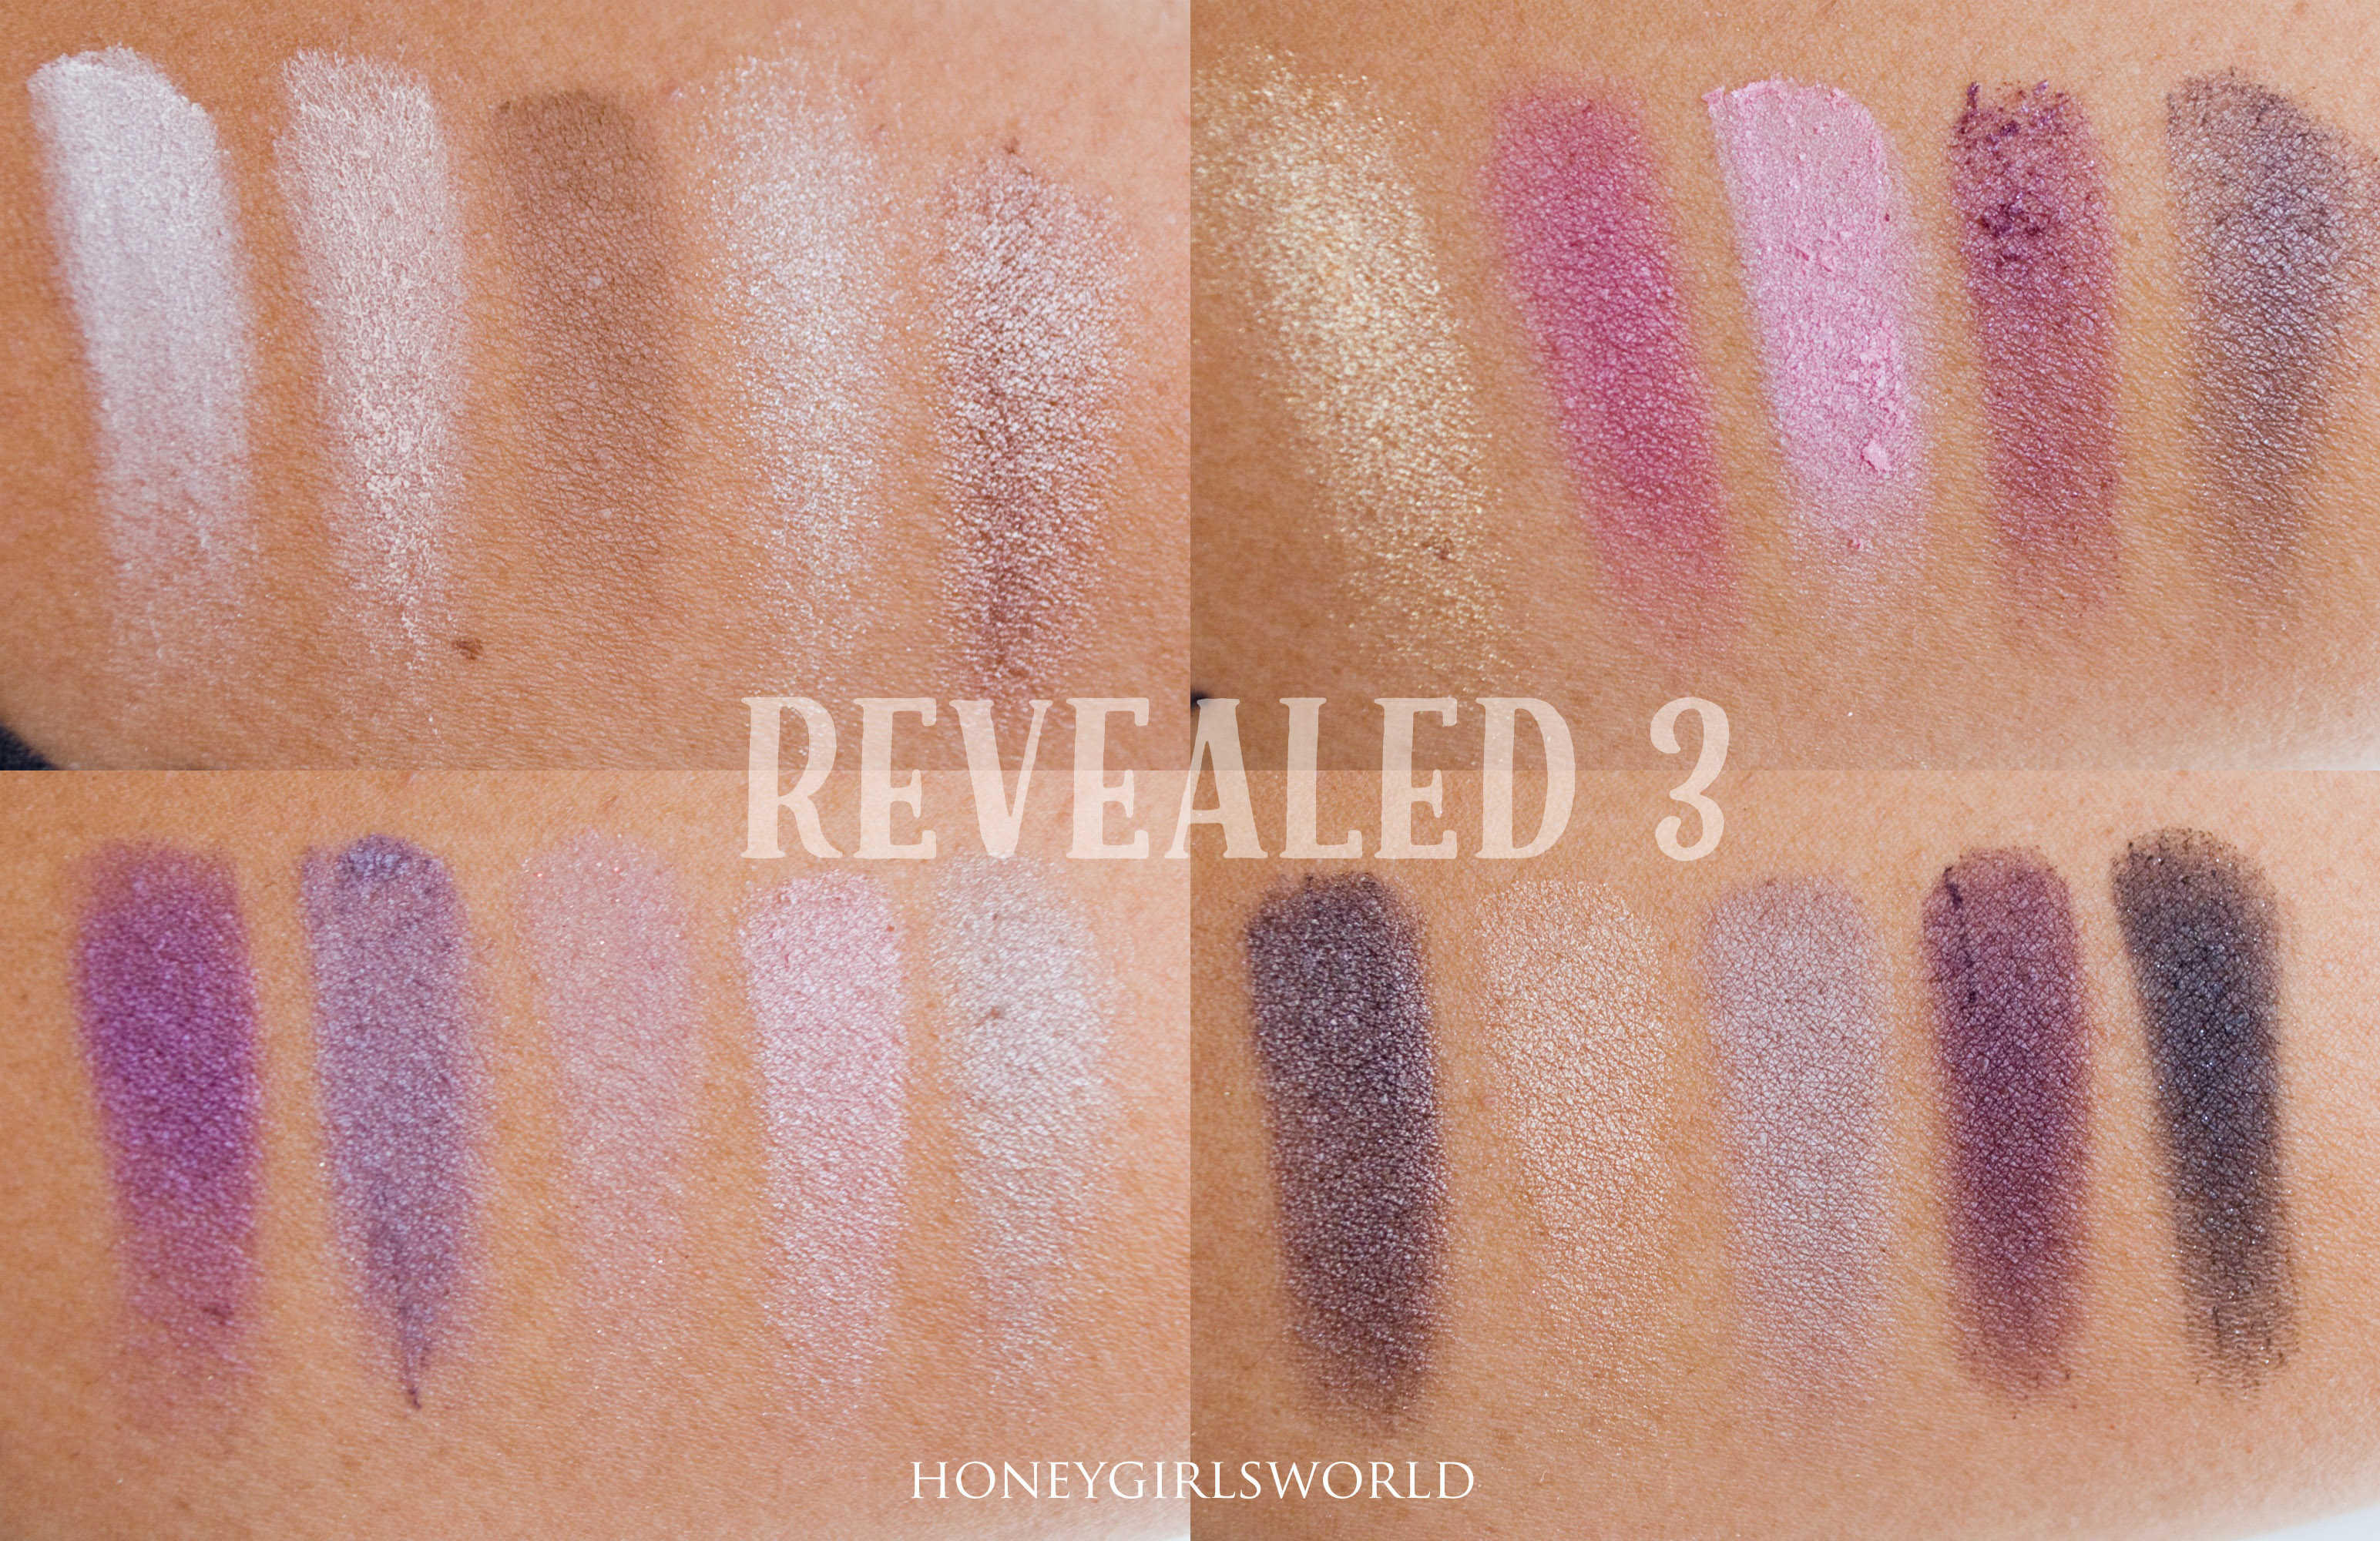 Coastal Scents Revealed 3 Swatches